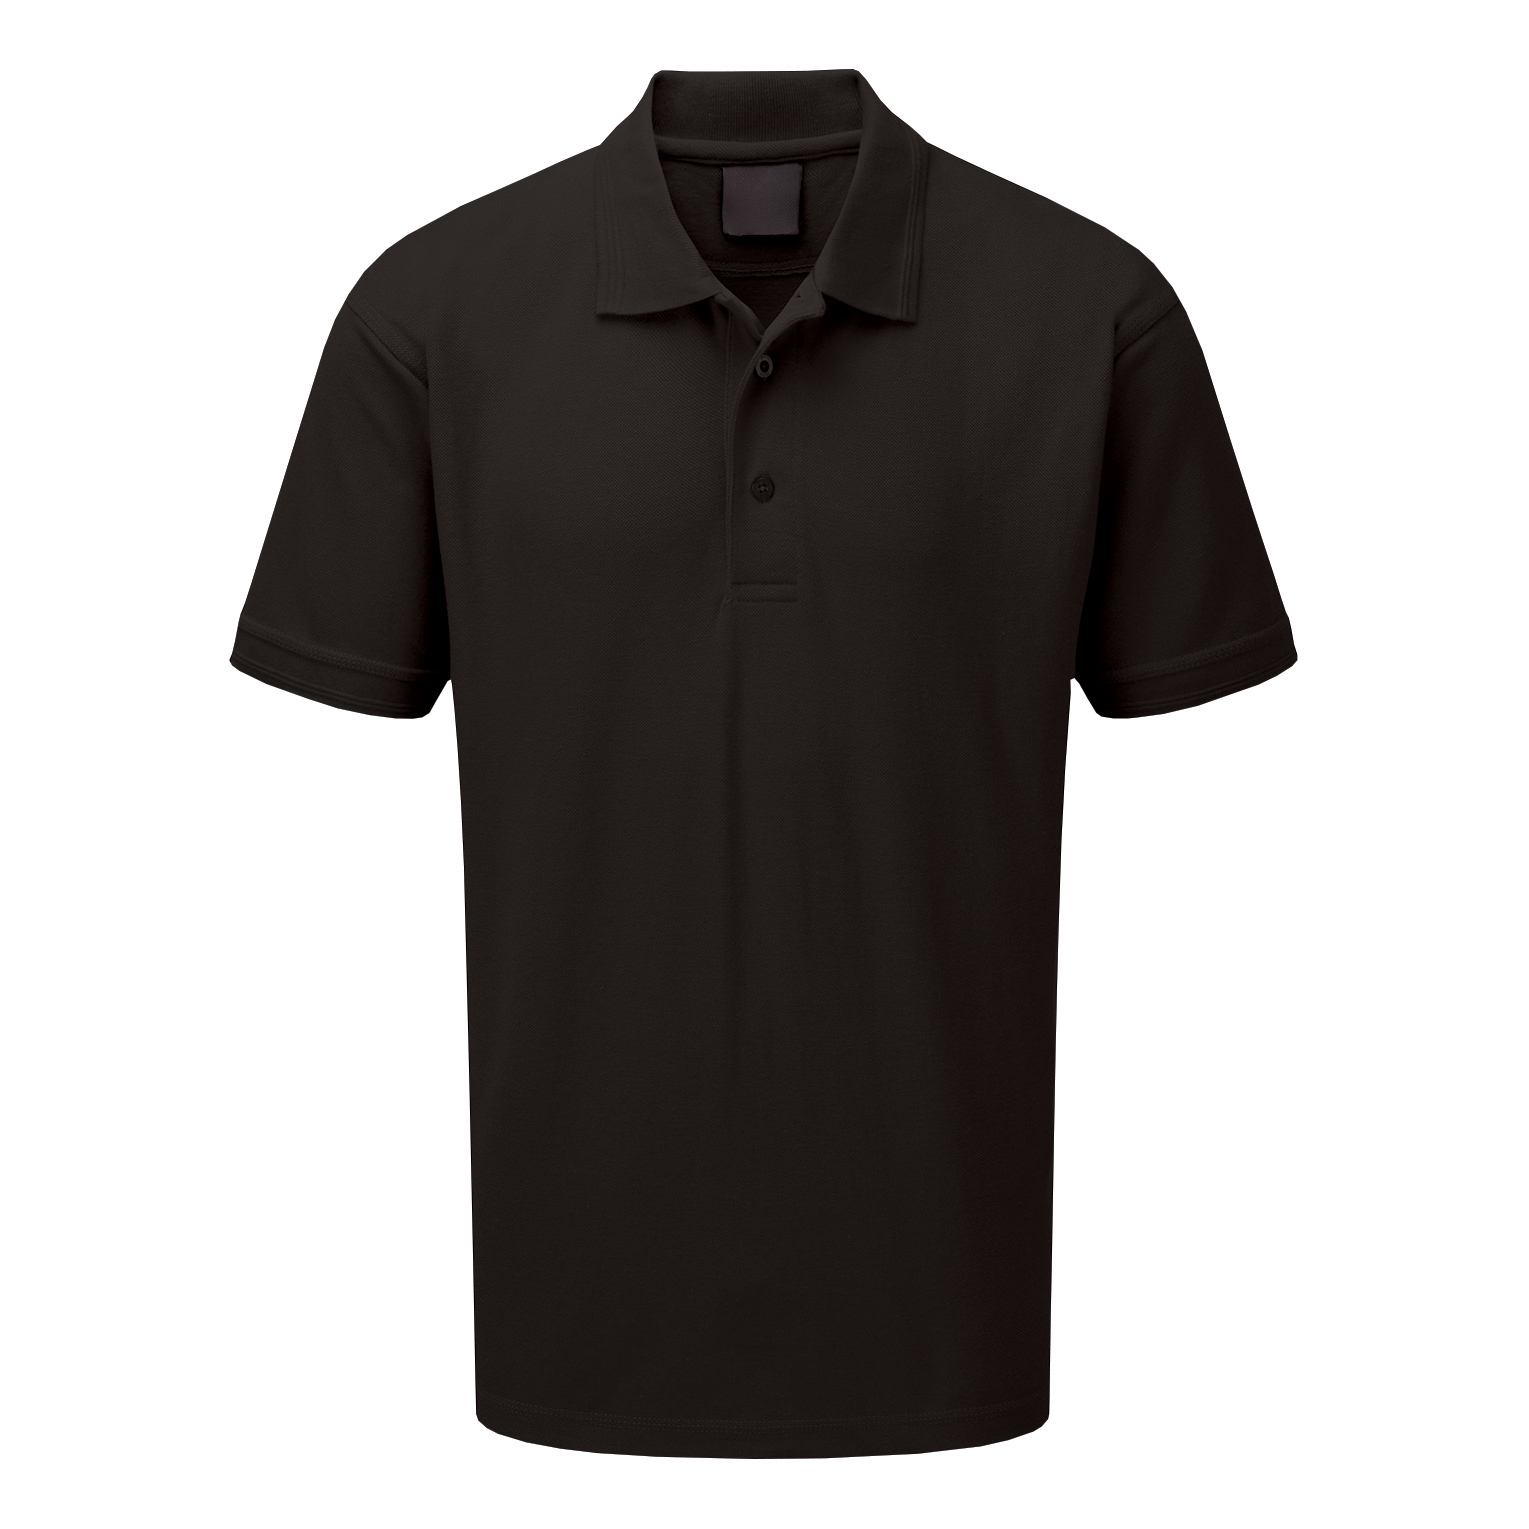 Supertouch Polo Shirt Classic Polycotton Medium Black Ref 56CA2 *Approx 3 Day Leadtime*